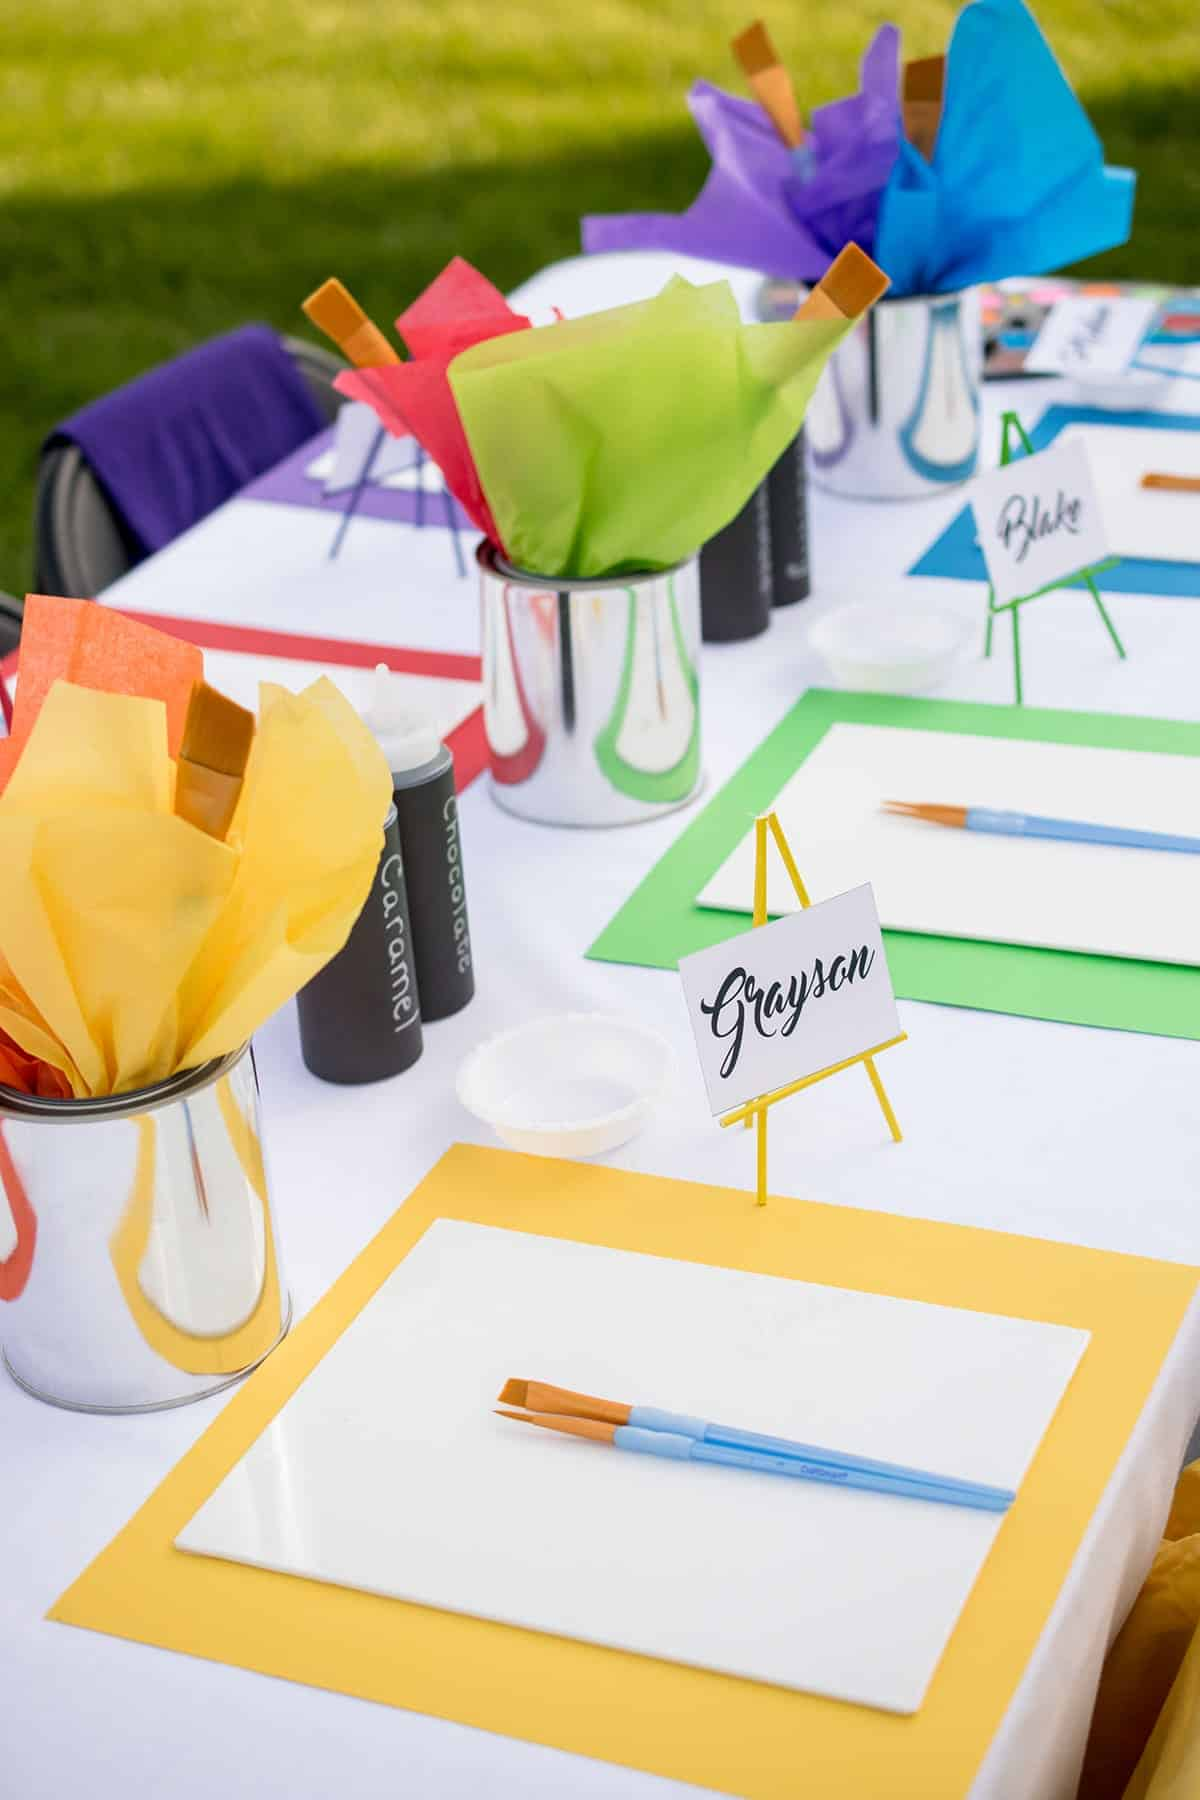 Recycled paint cans with rainbow tissue paper and paint brushes as centerpieces for kid's paint party